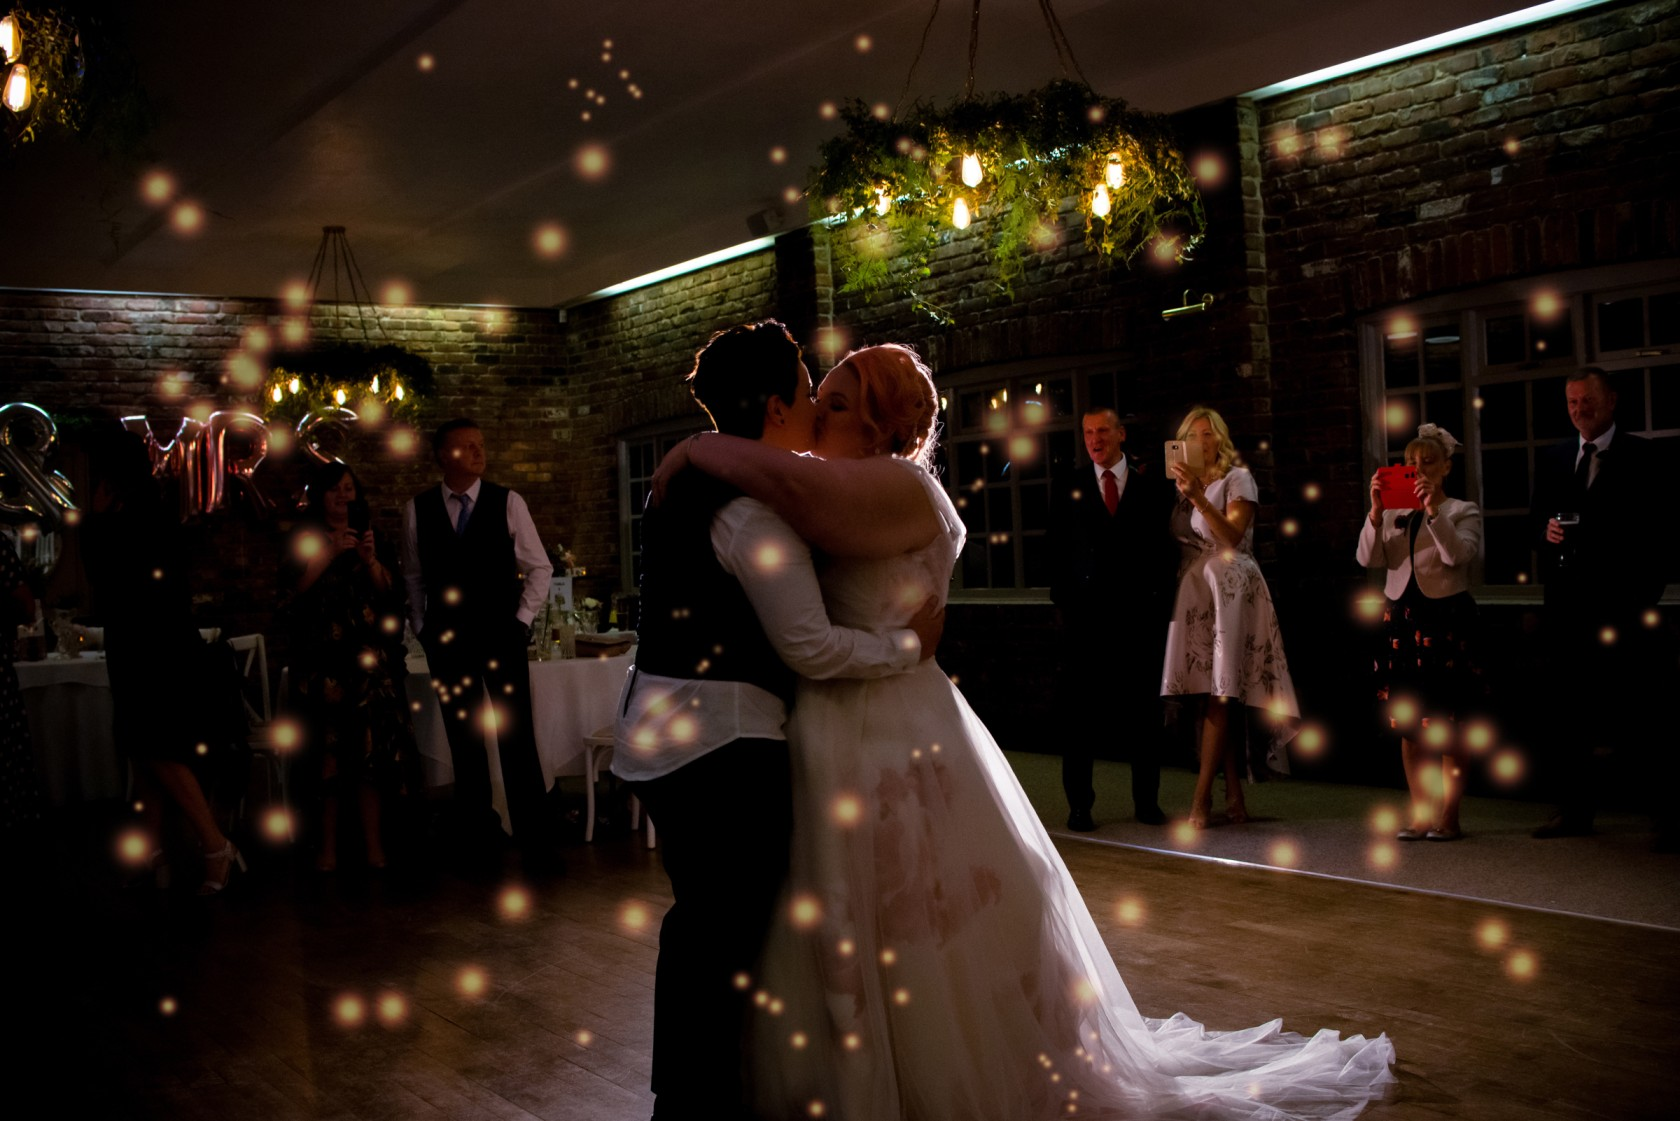 first dance photo - wonderland wedding - real wedding inspiration - DIY wedding - romantic wedding - same sex wedding - lgbtq wedding - unconventional wedding